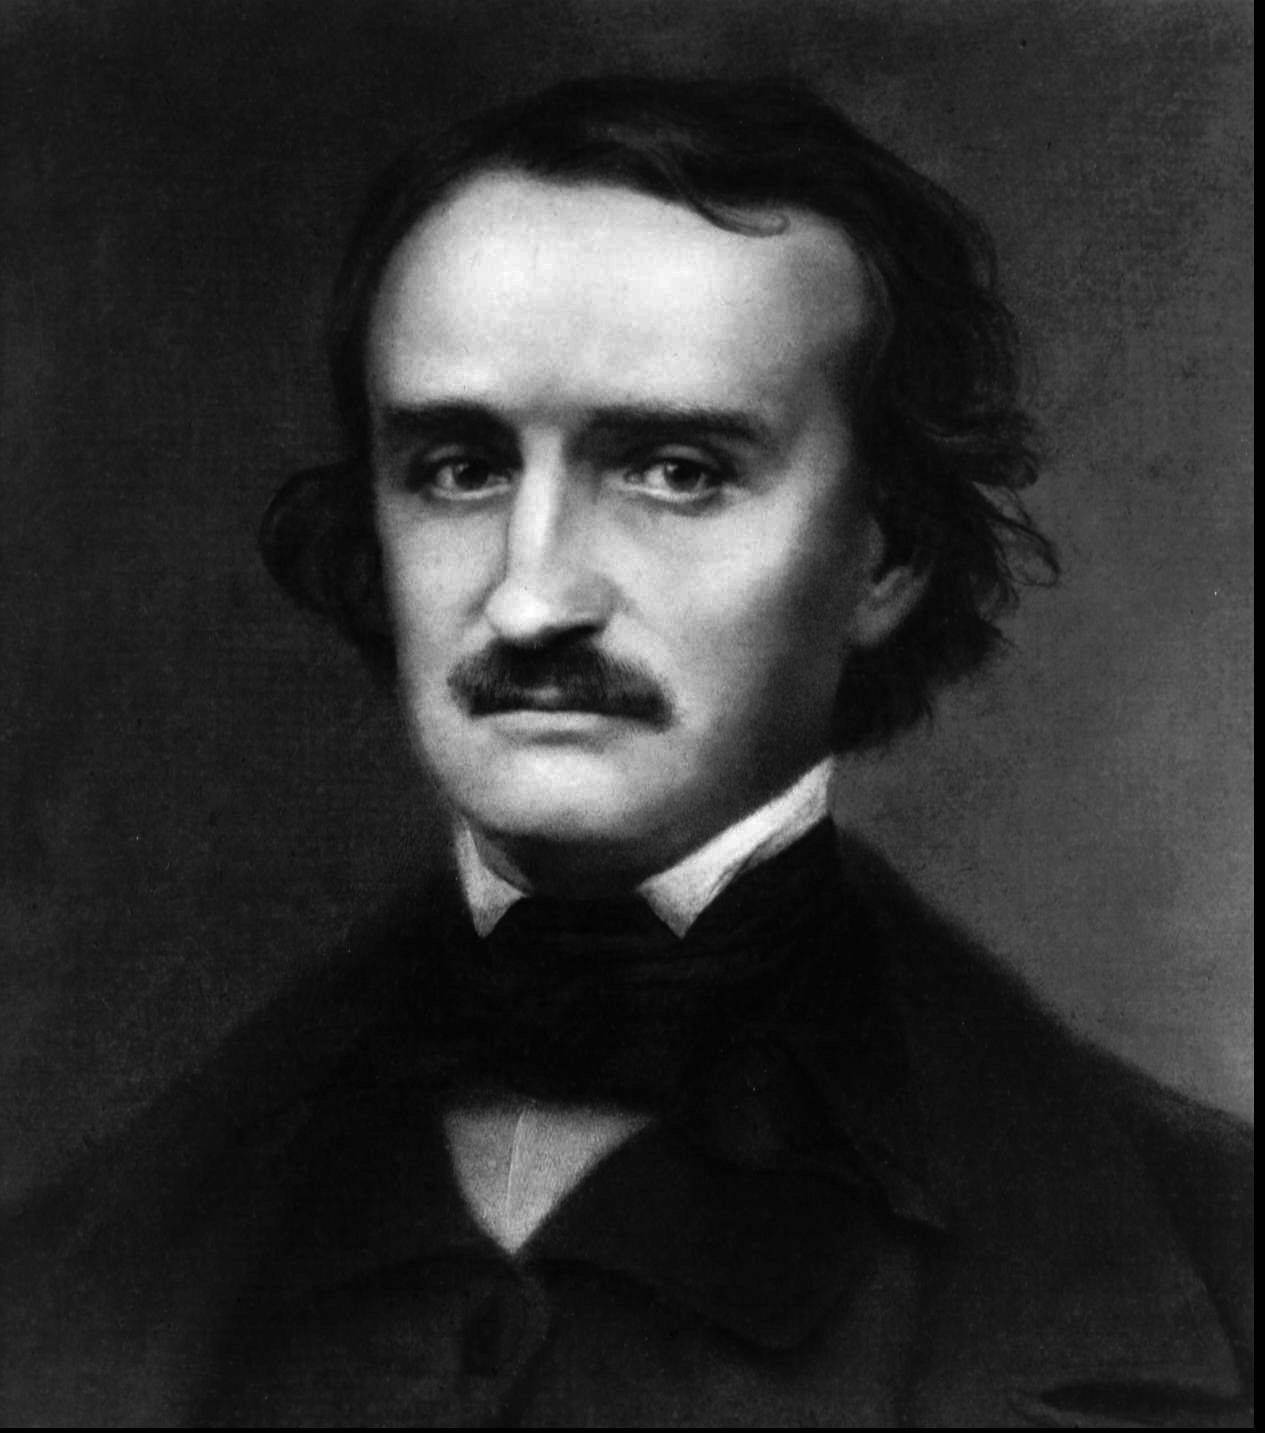 The works of Edgar Allan Poe will be featured this weekend at Elgin Walkabout: Theater on Your Feet.